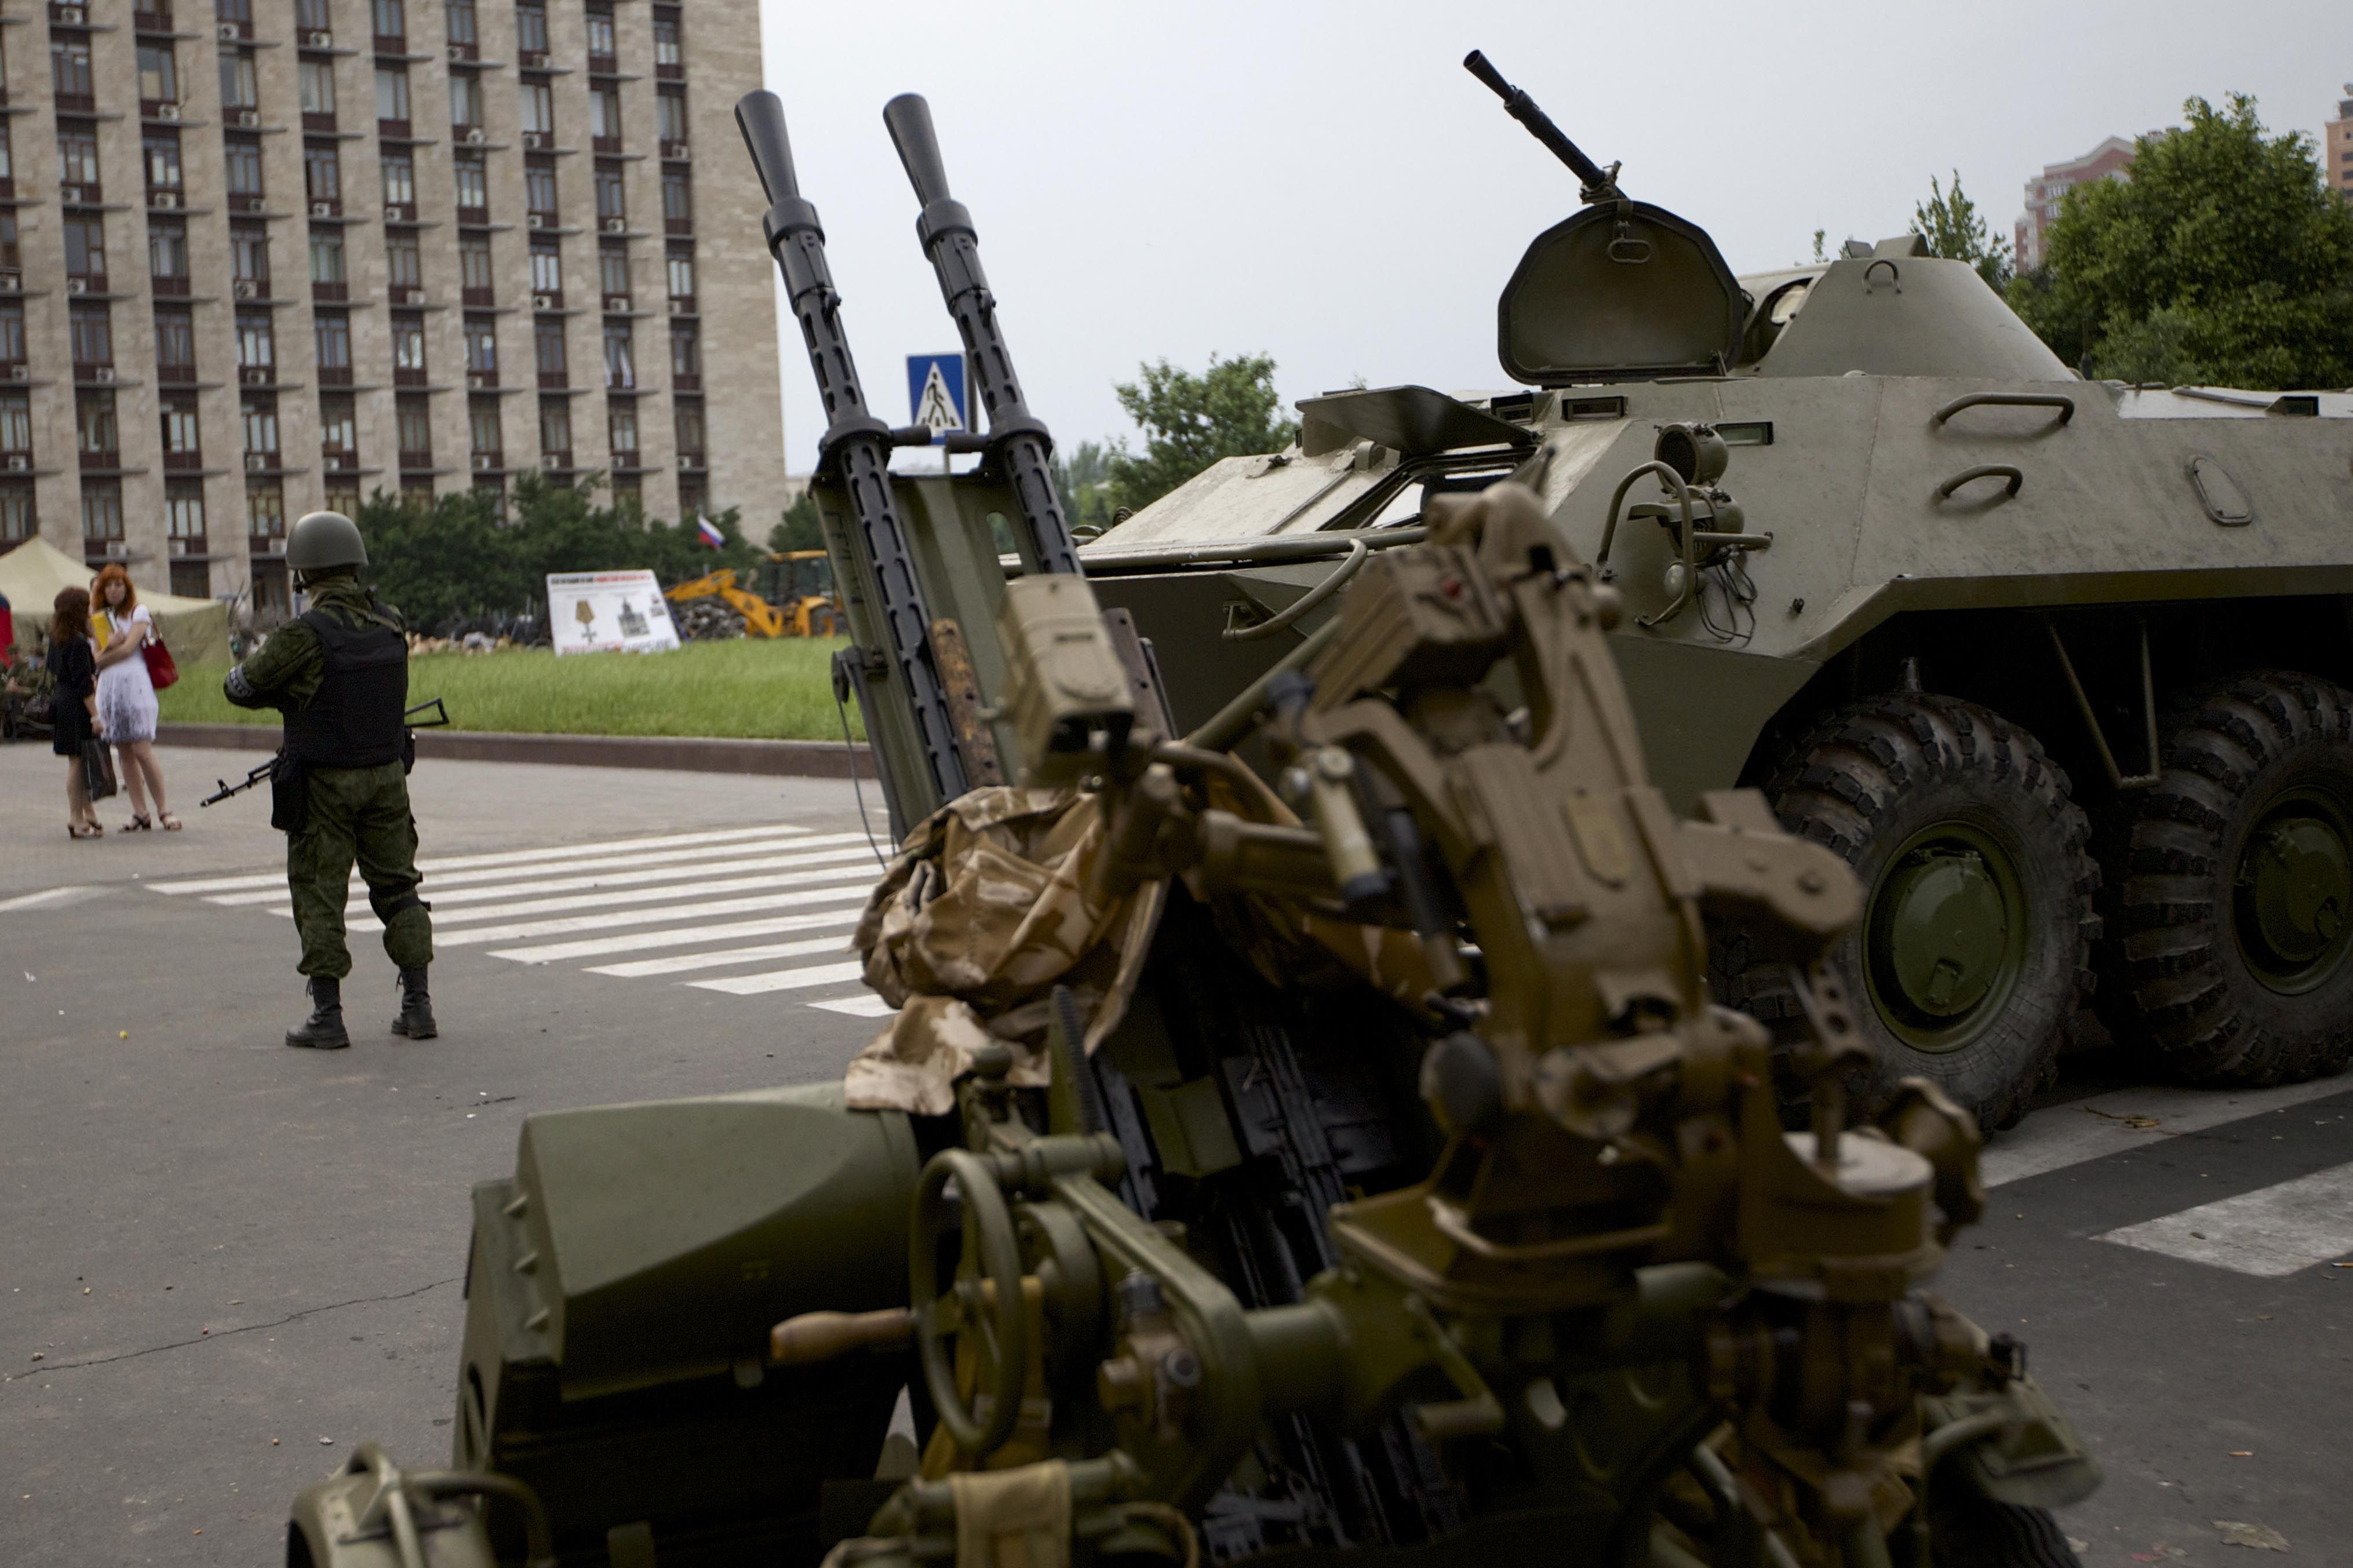 Russia pulls most troops from Ukraine border, US defense officials say